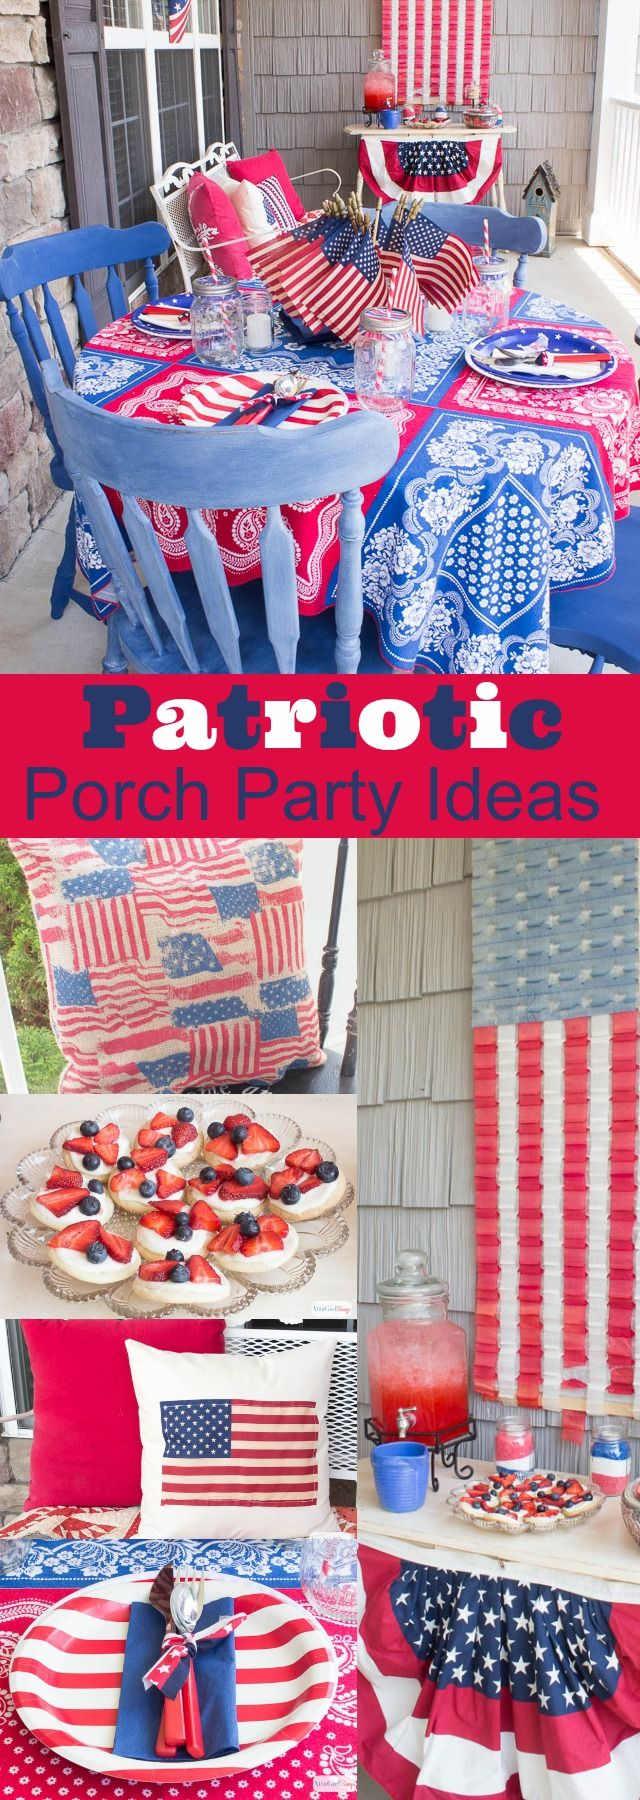 All-American 4th of July Ideas